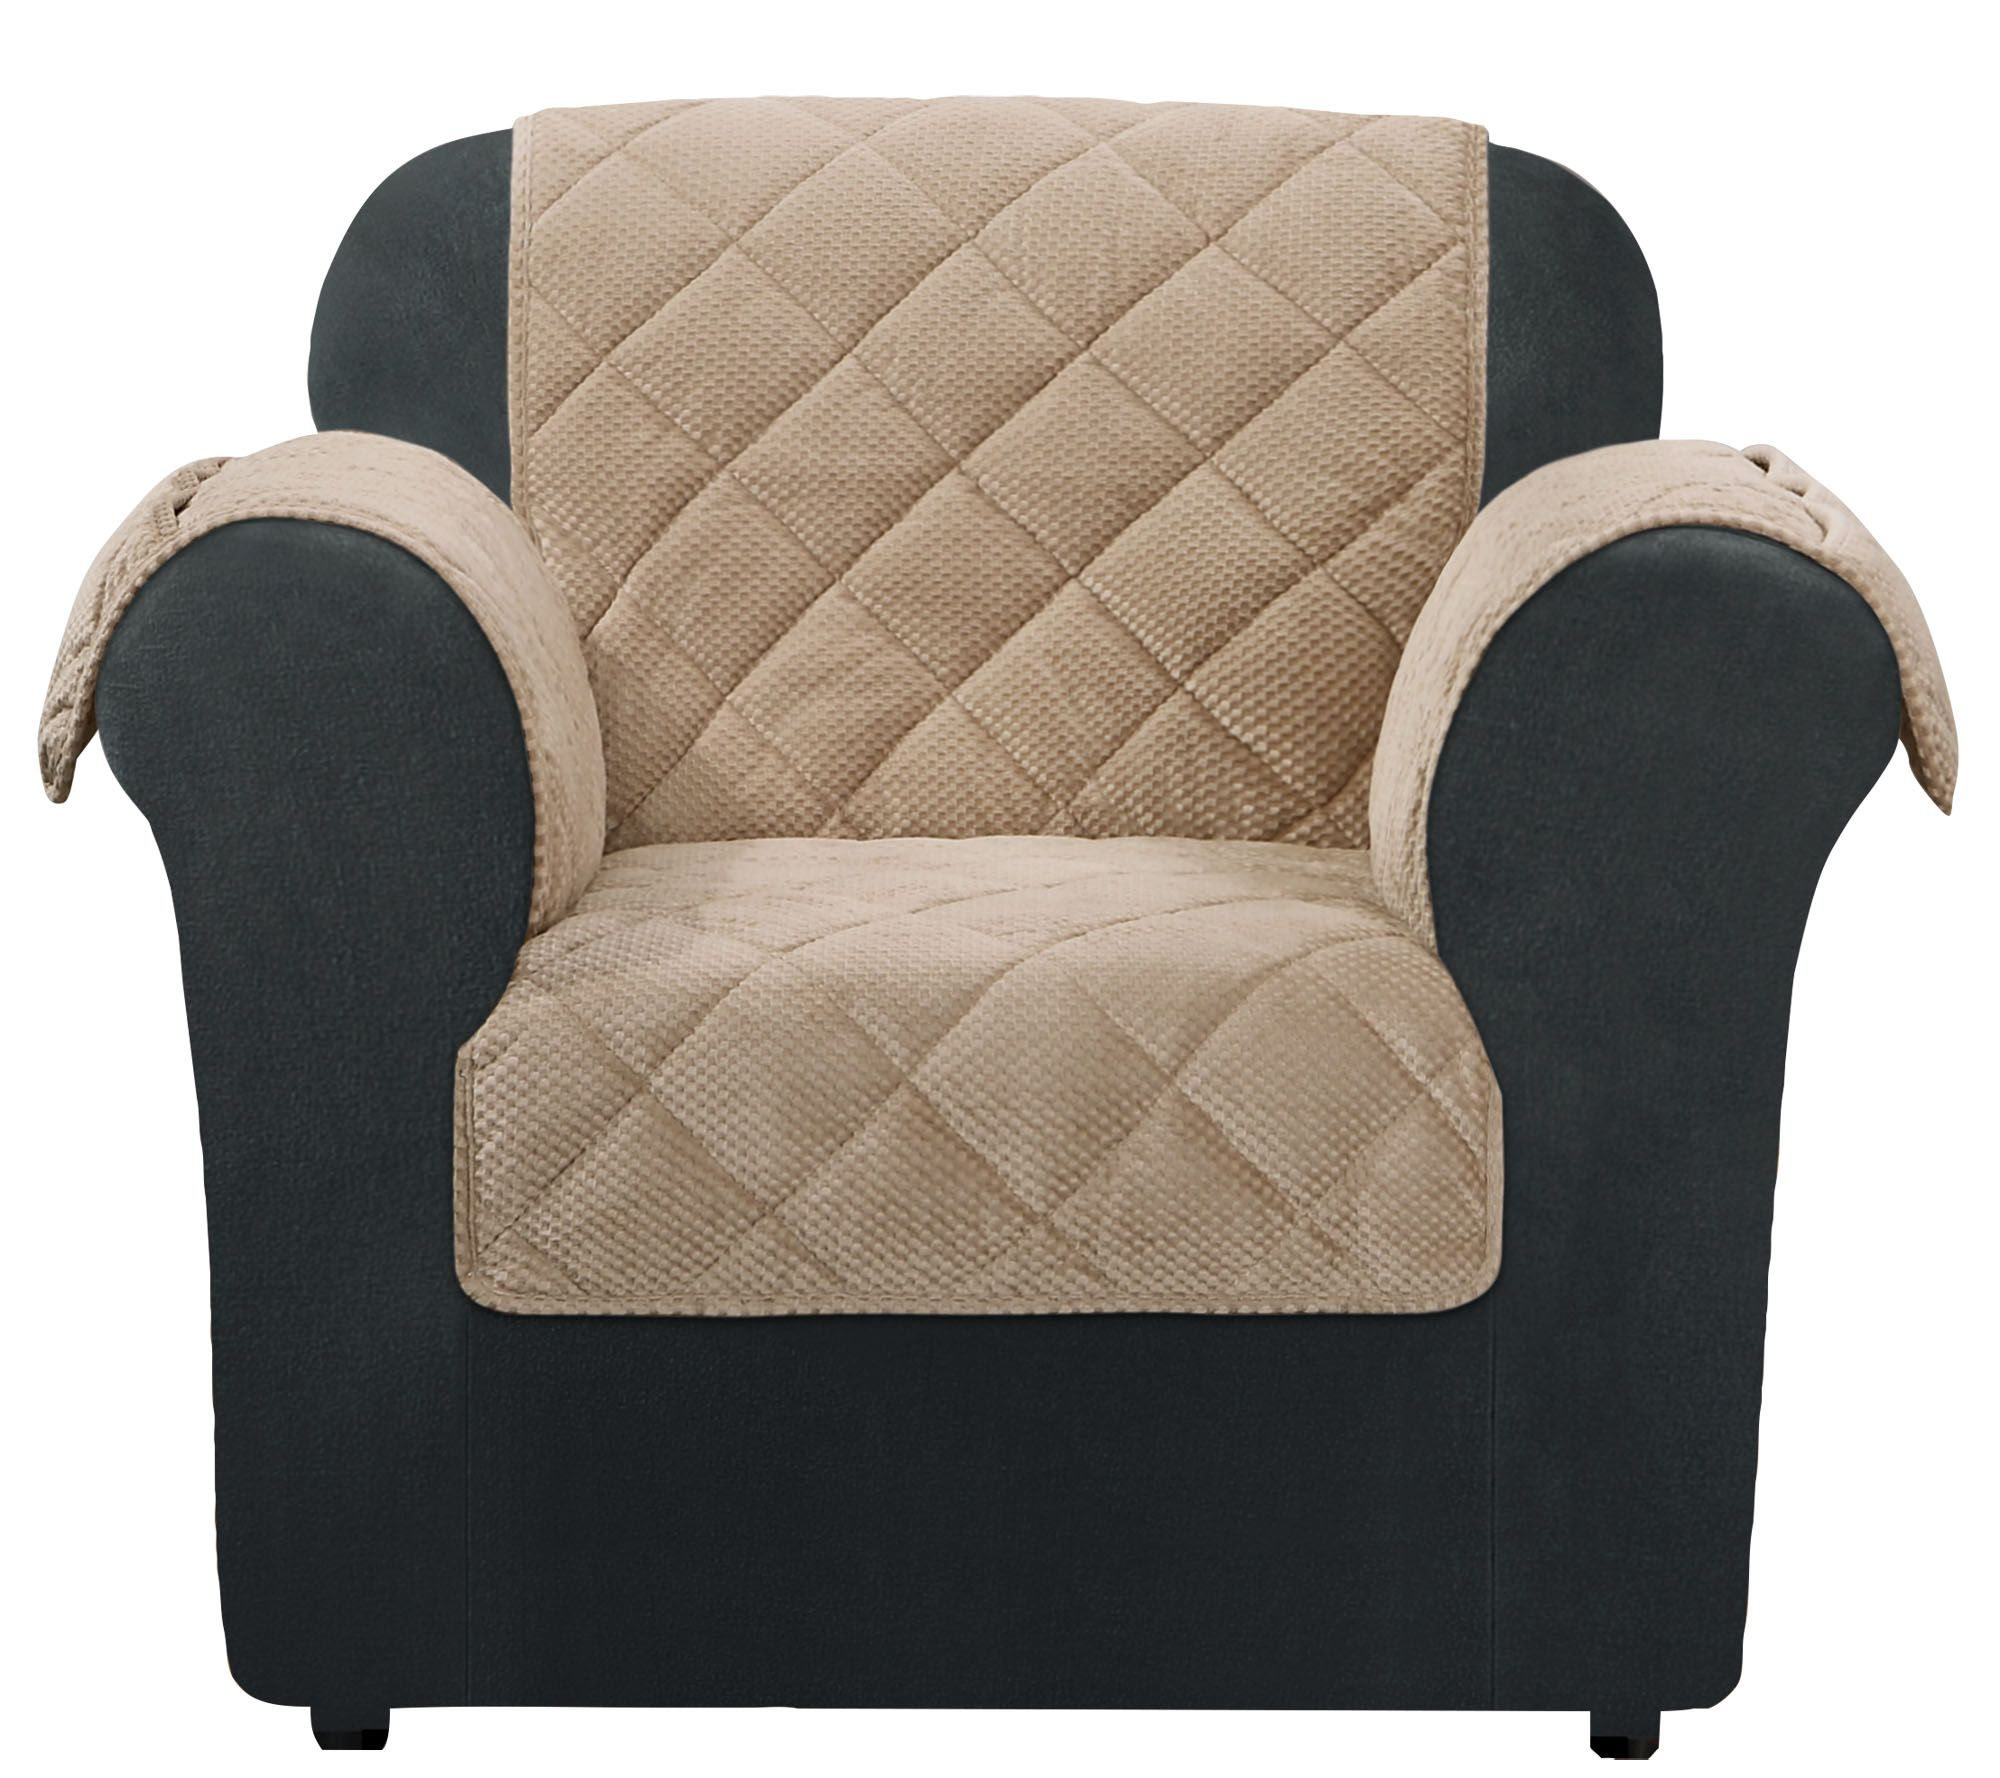 Sure Fit Chair Furniture Cover with Textured Pique Fabric Page 1